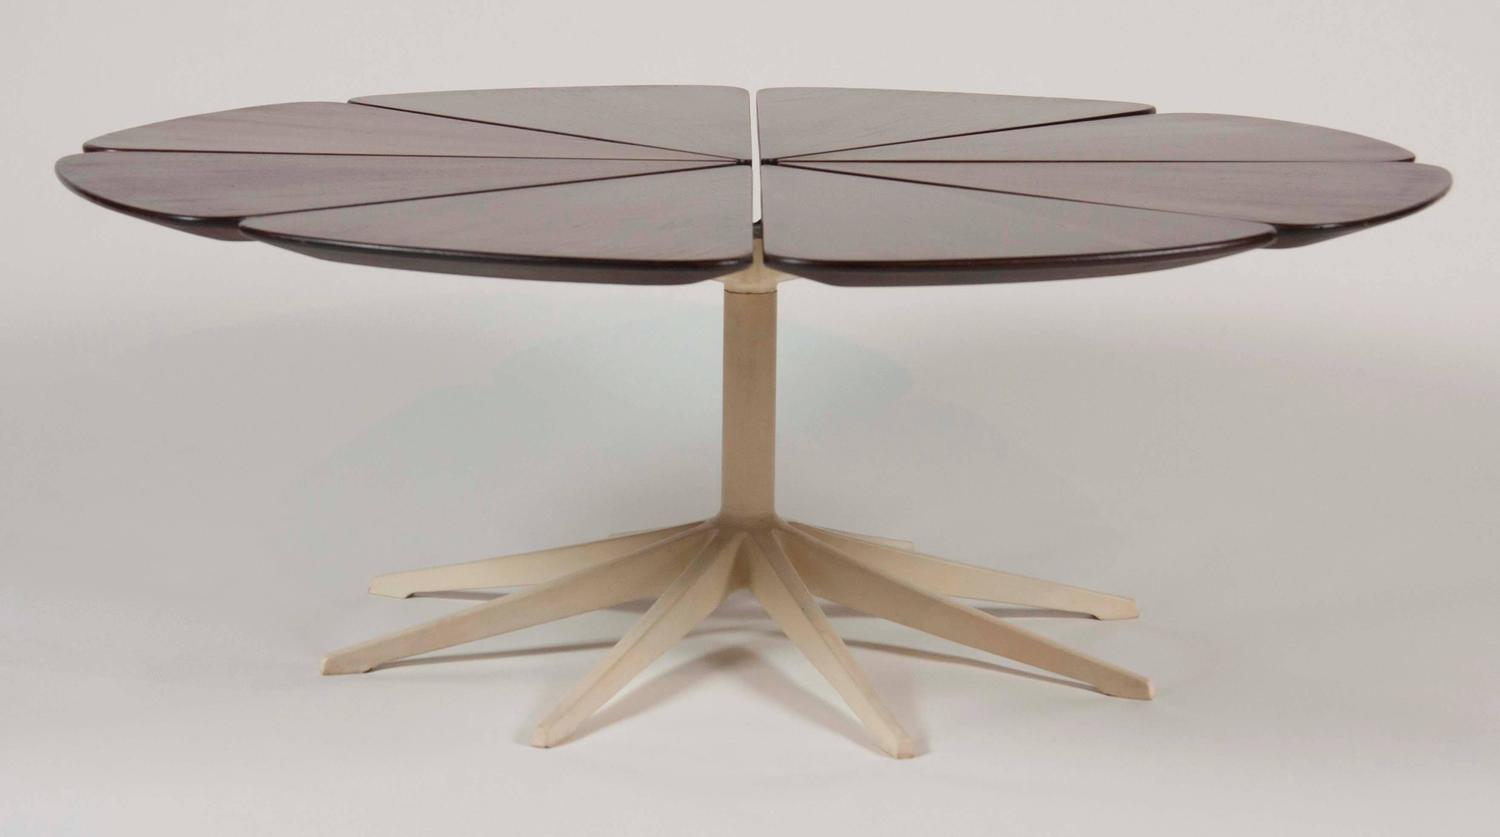 Richard Schultz Redwood Petal Coffee Table Made By Knoll For Sale At 1stdibs